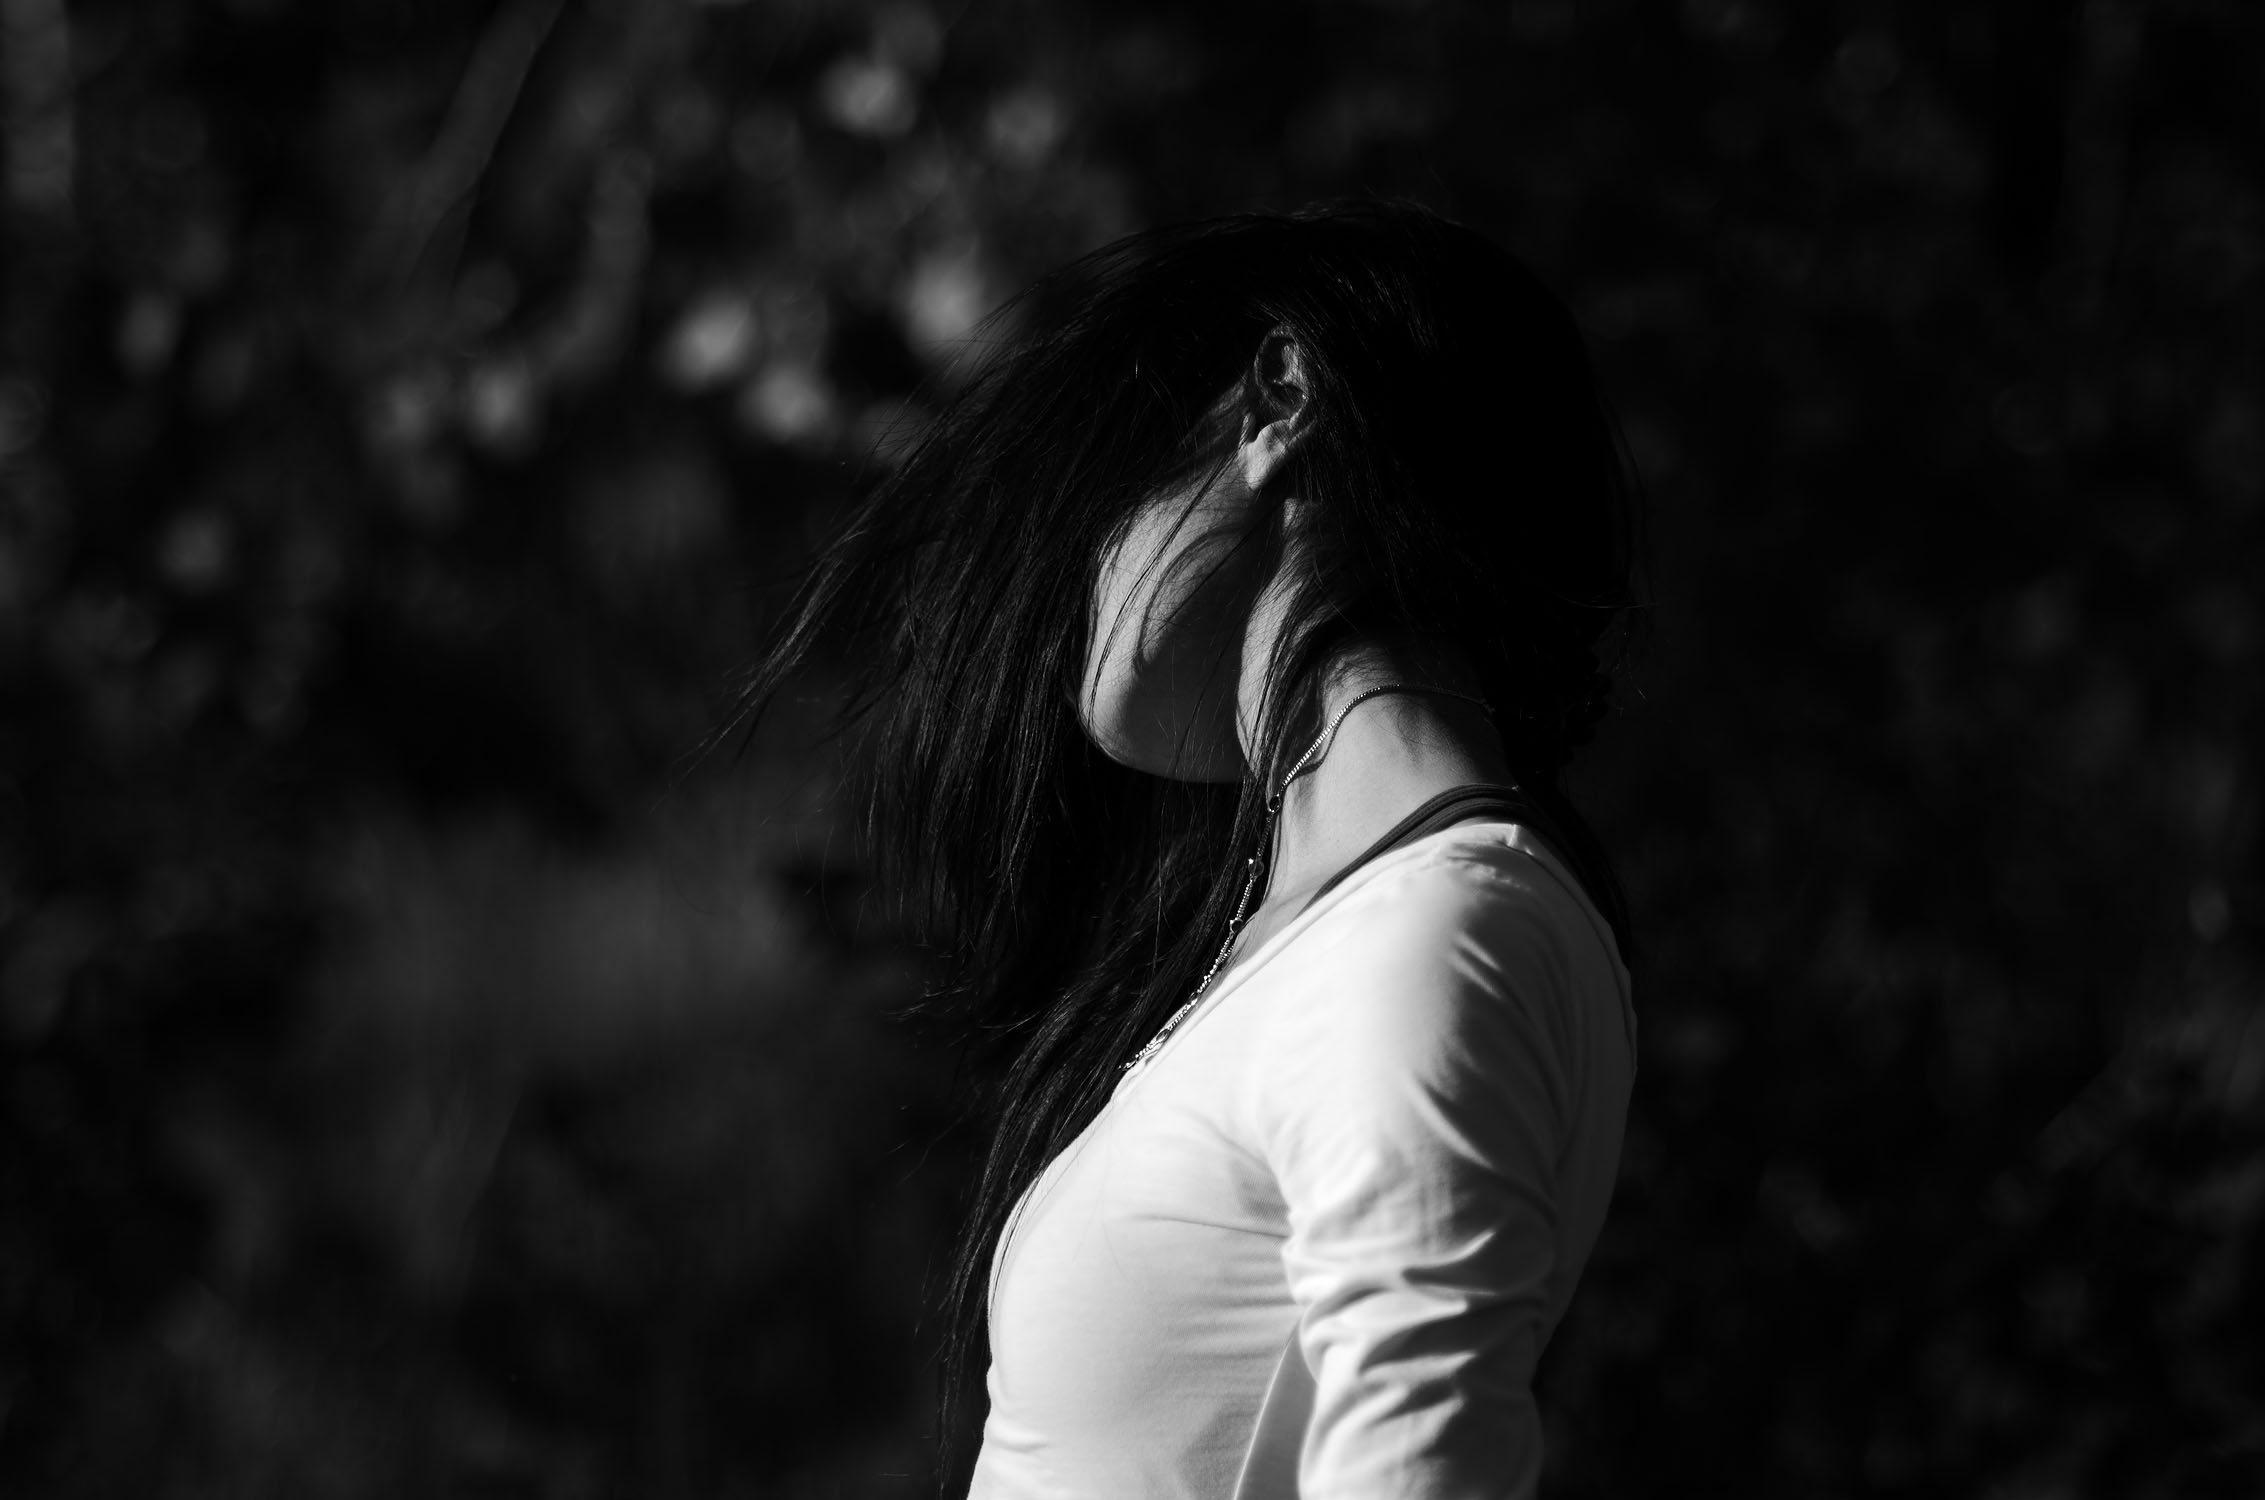 jacqueline-ghostly2016-24.jpg